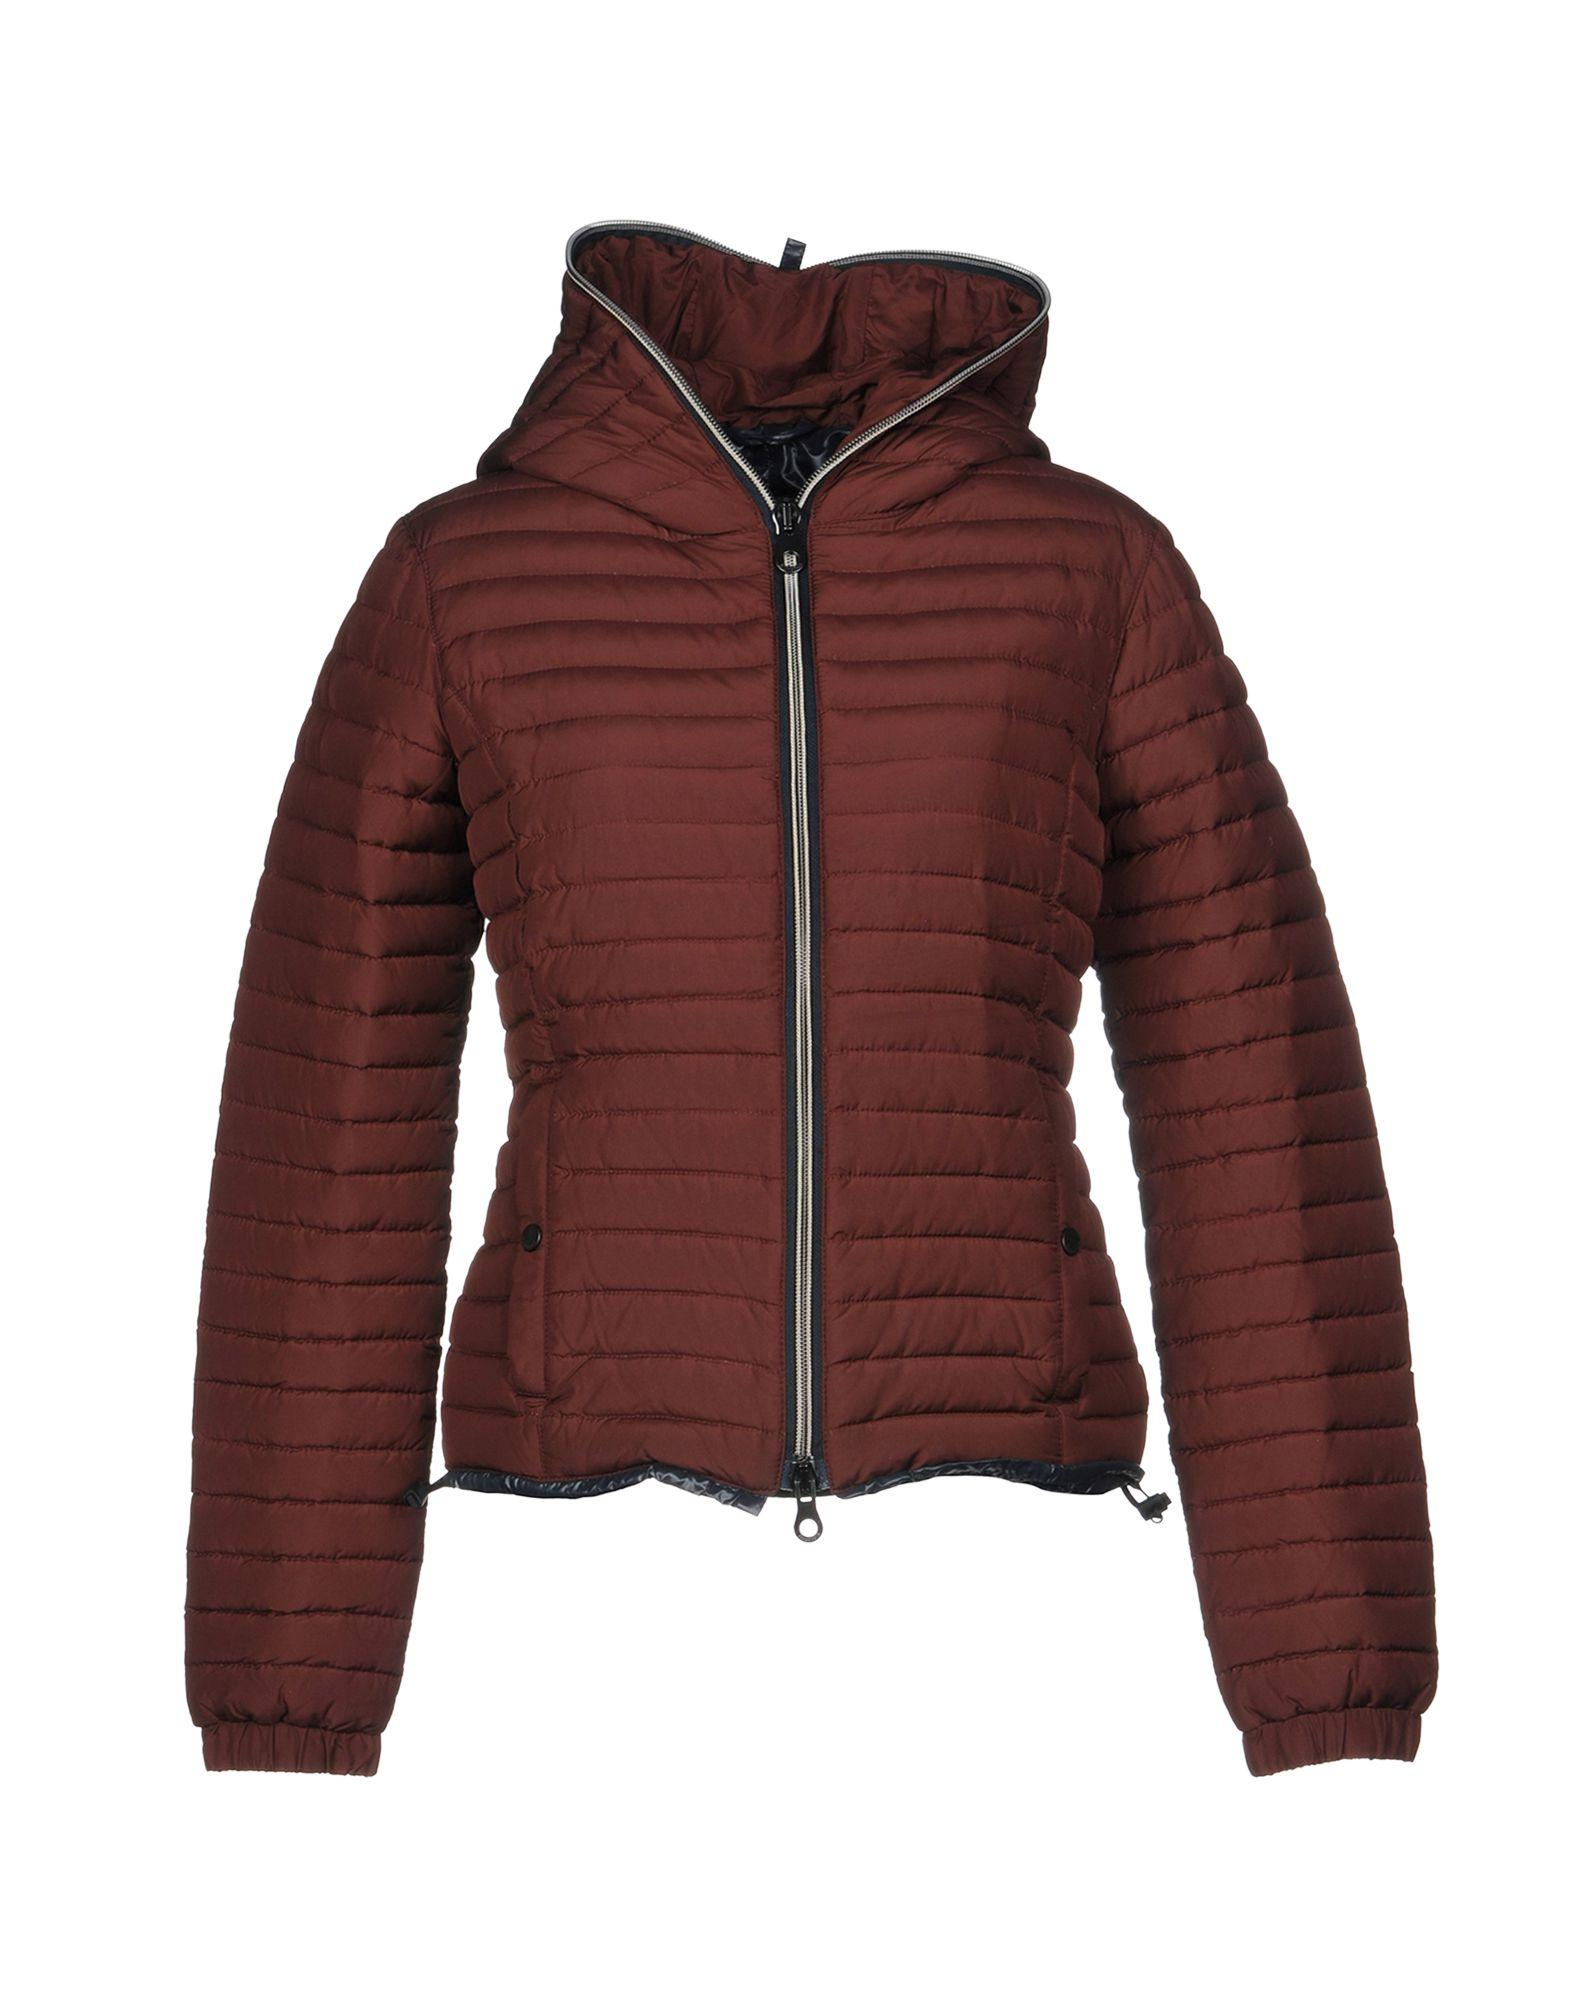 Duvetica Down Jackets In Cocoa